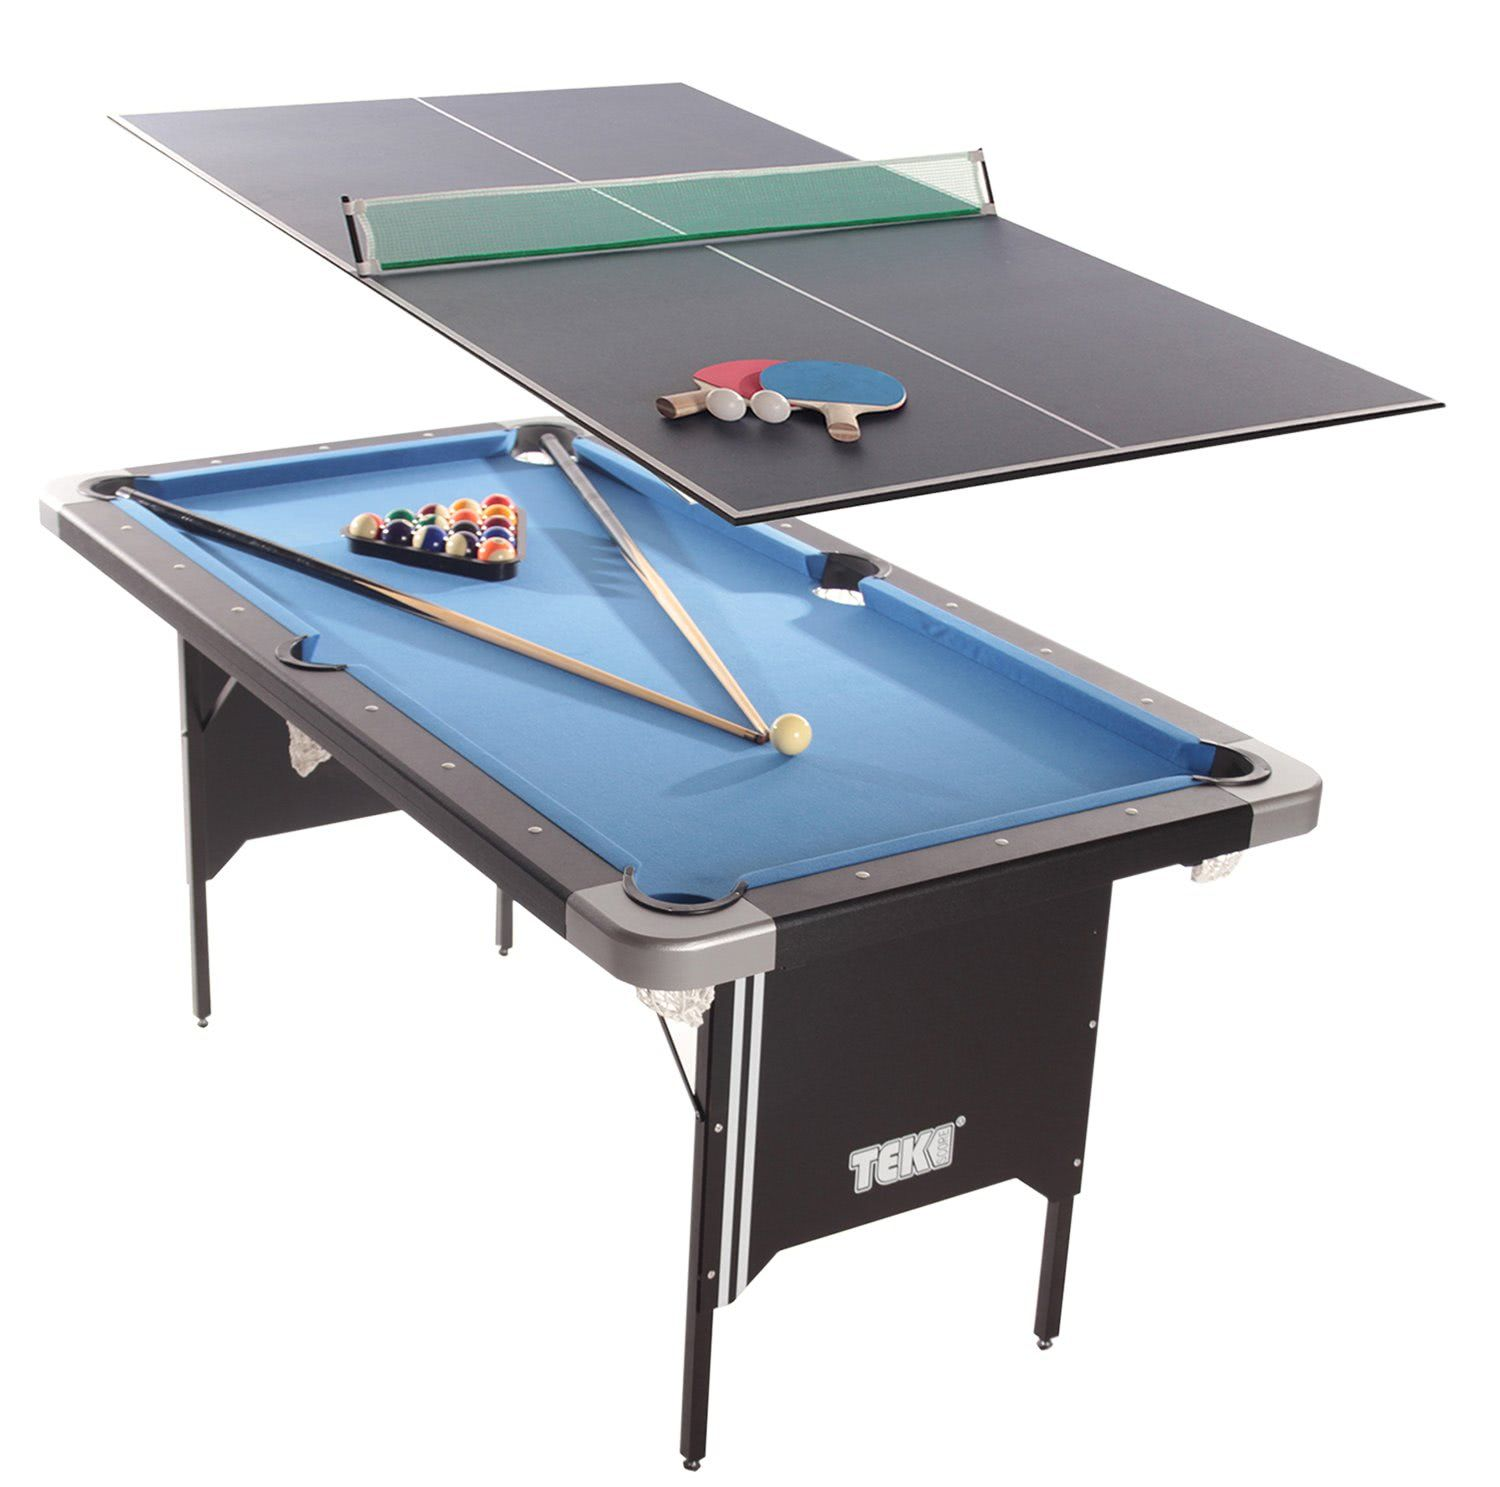 Table Tennis Conversion Top In 2020 Table Tennis Conversion Top Pool Table Outdoor Table Tennis Table